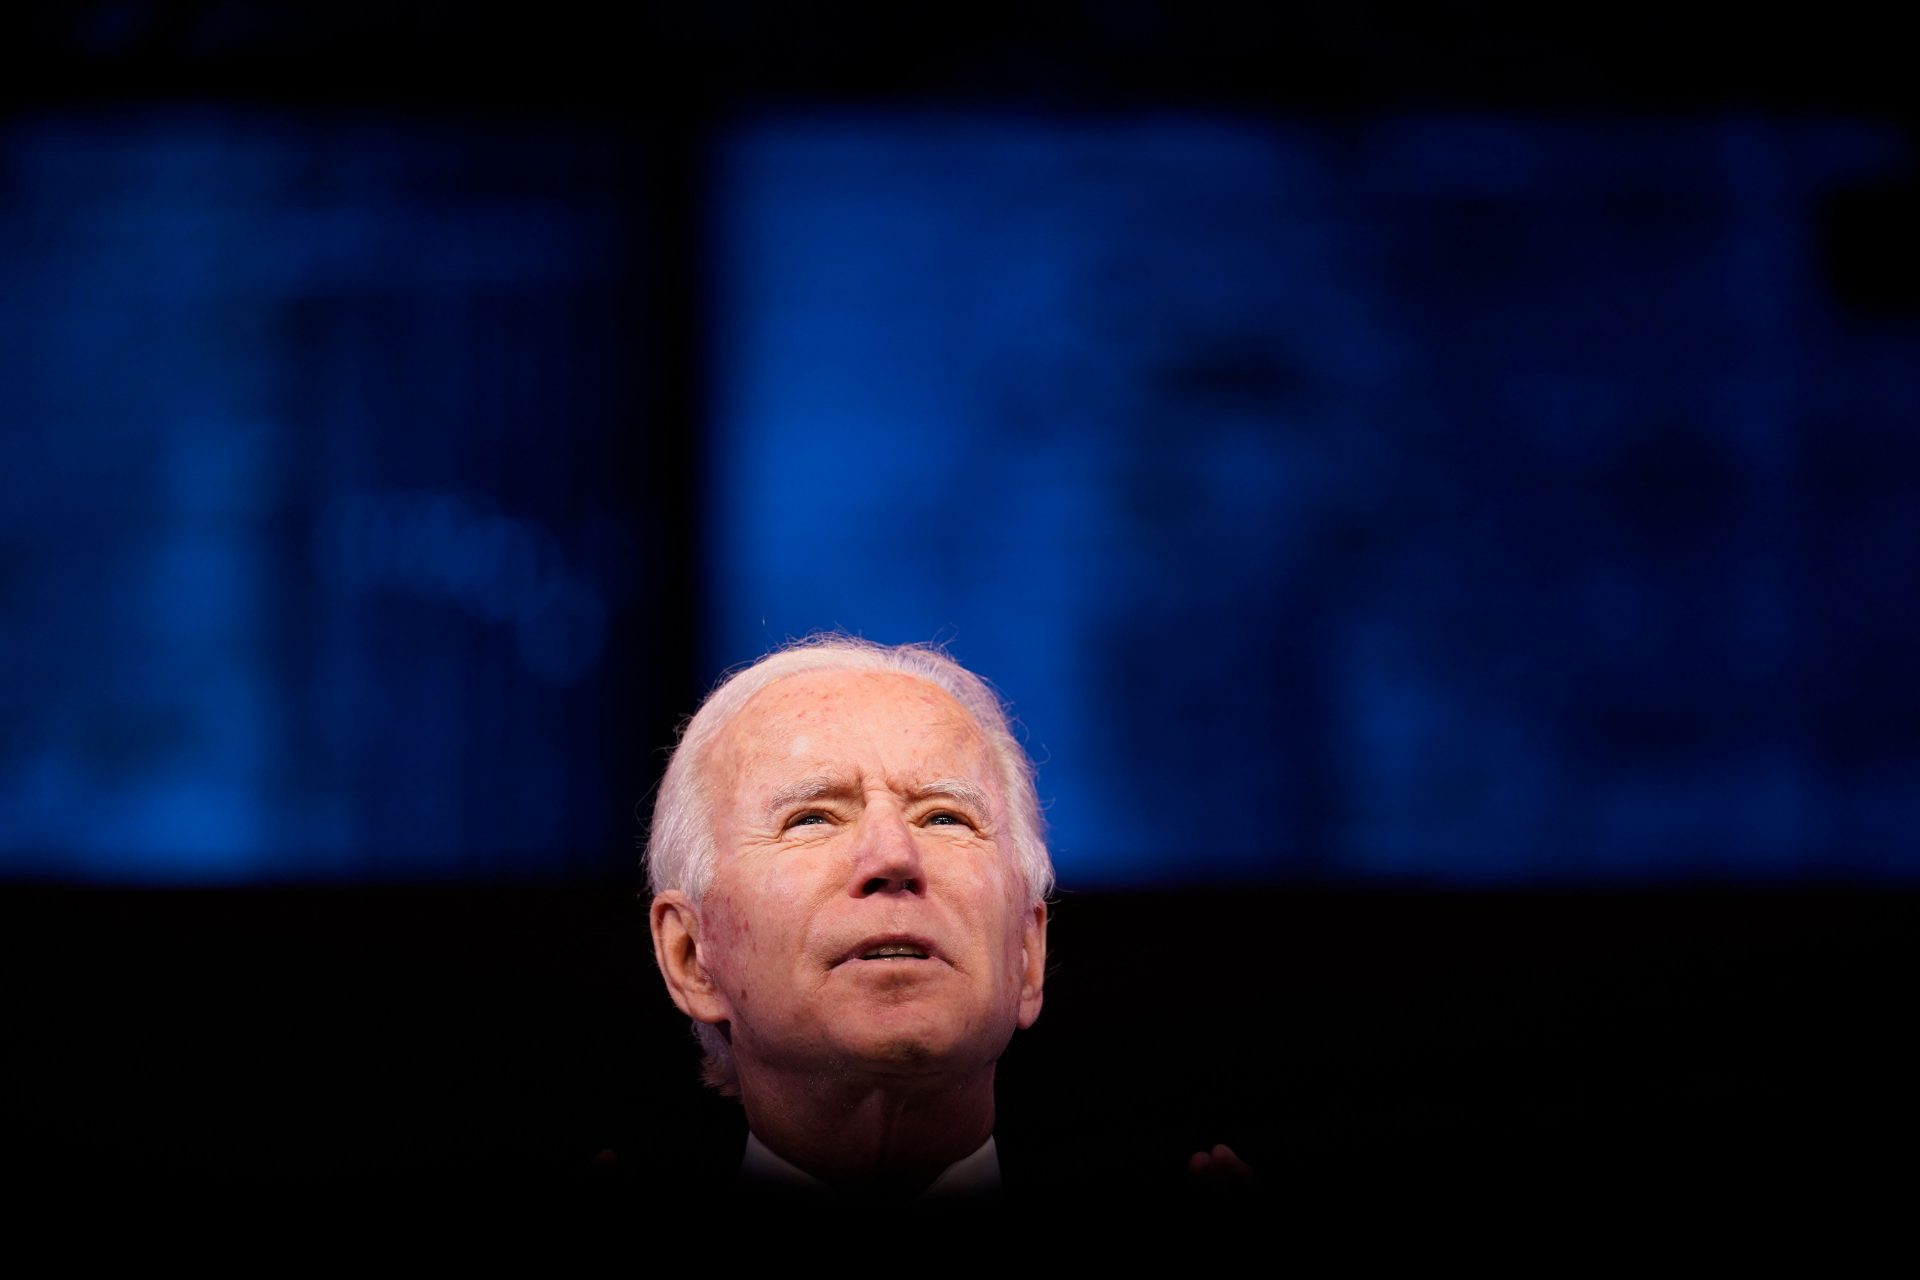 Mandatory Credit: Photo by Andrew Harnik/AP/Shutterstock (11673489i)President-elect Joe Biden speaks at The Queen theater, in Wilmington, DelBiden, Wilmington, United States - 29 Dec 2020.